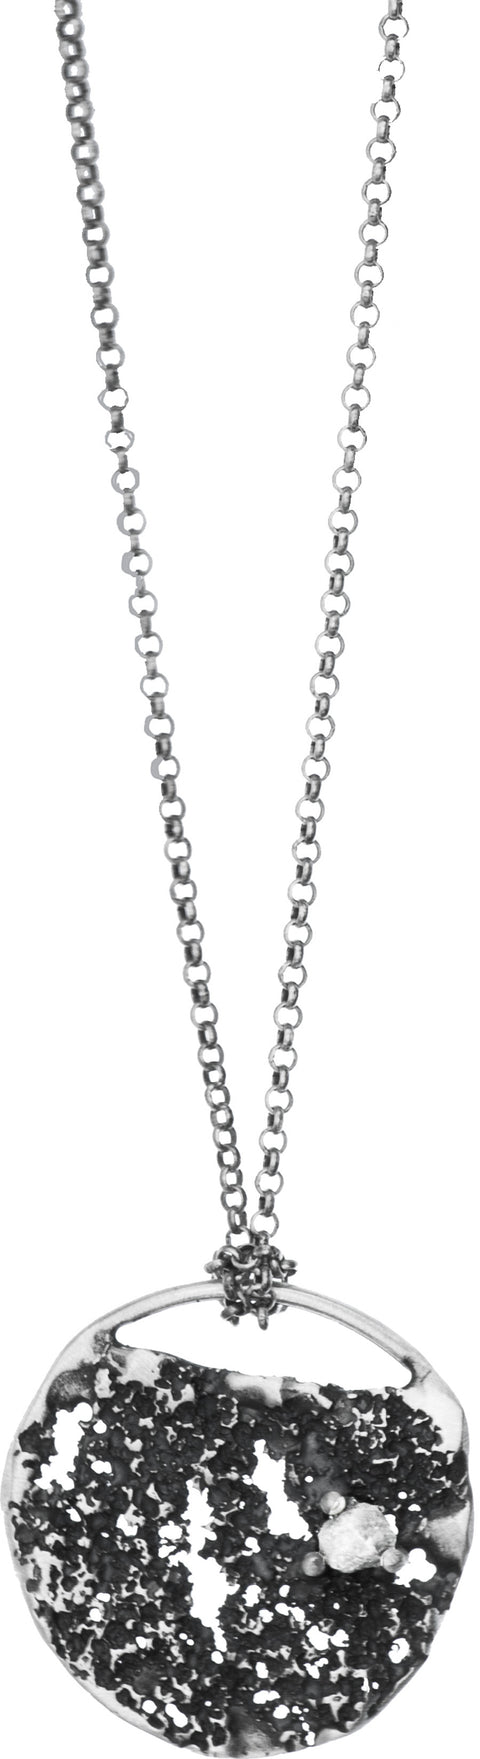 Silver Necklace with Diamond | MS2541 - Artizen Jewelry